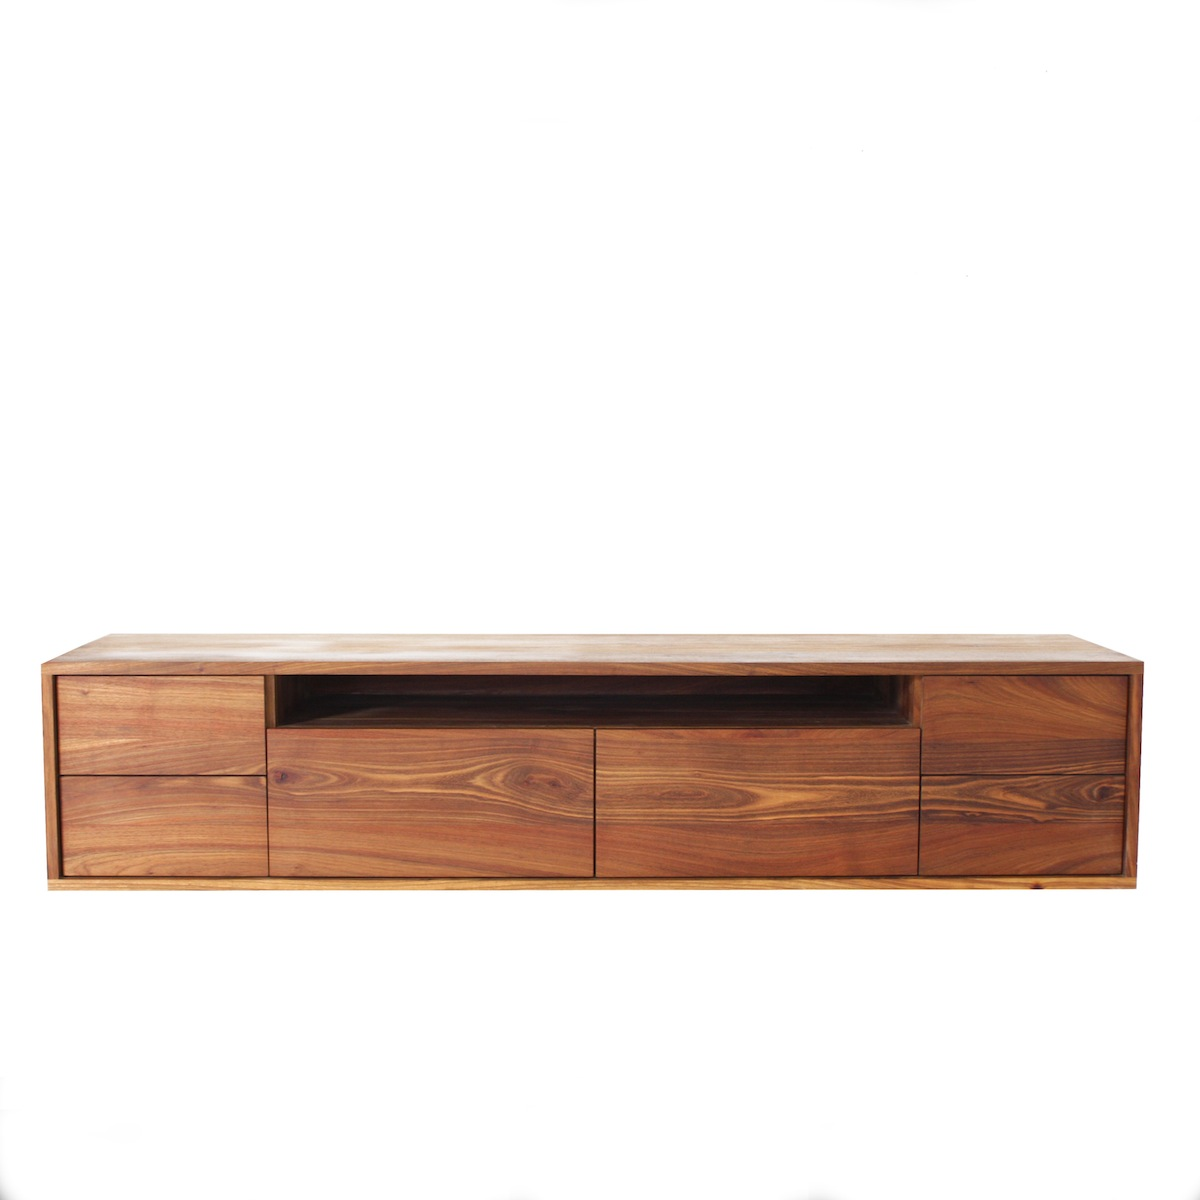 The Goodwood Co Gspek Floating Tv Unit In Solid Wood Kiaat